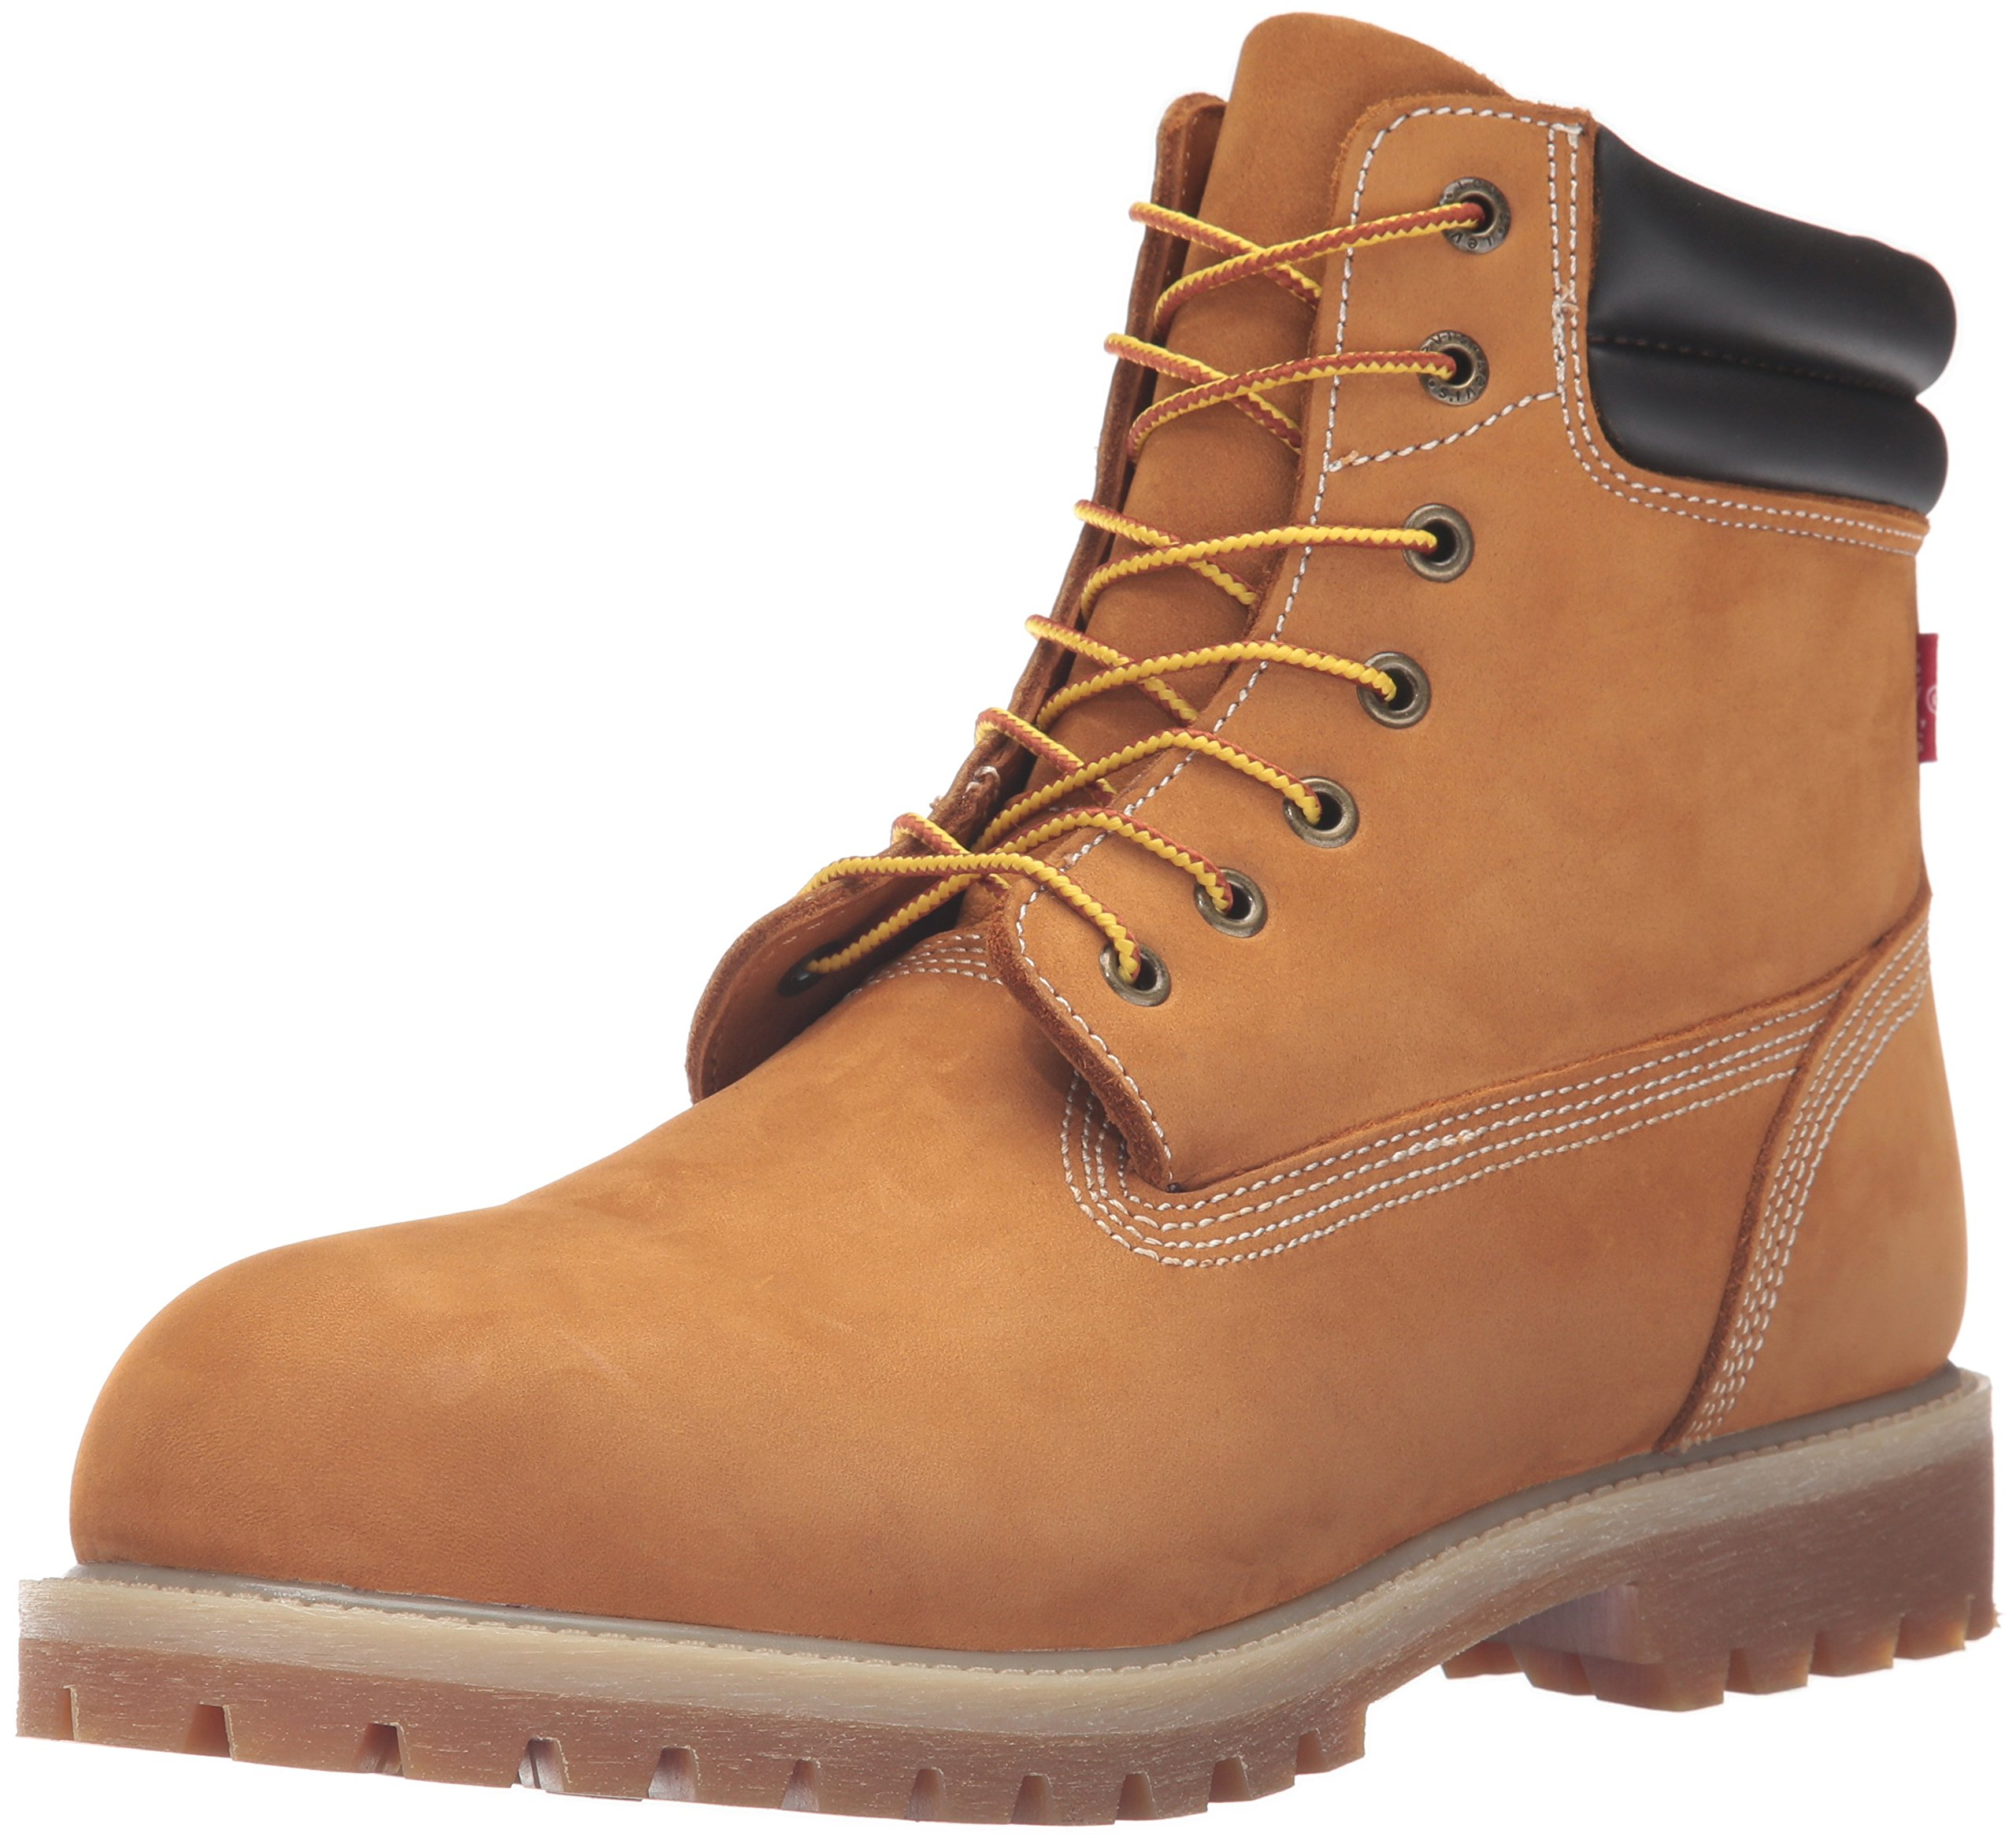 Levi's Men's Harrison R Engineer Boot, Wheat, 10 M US